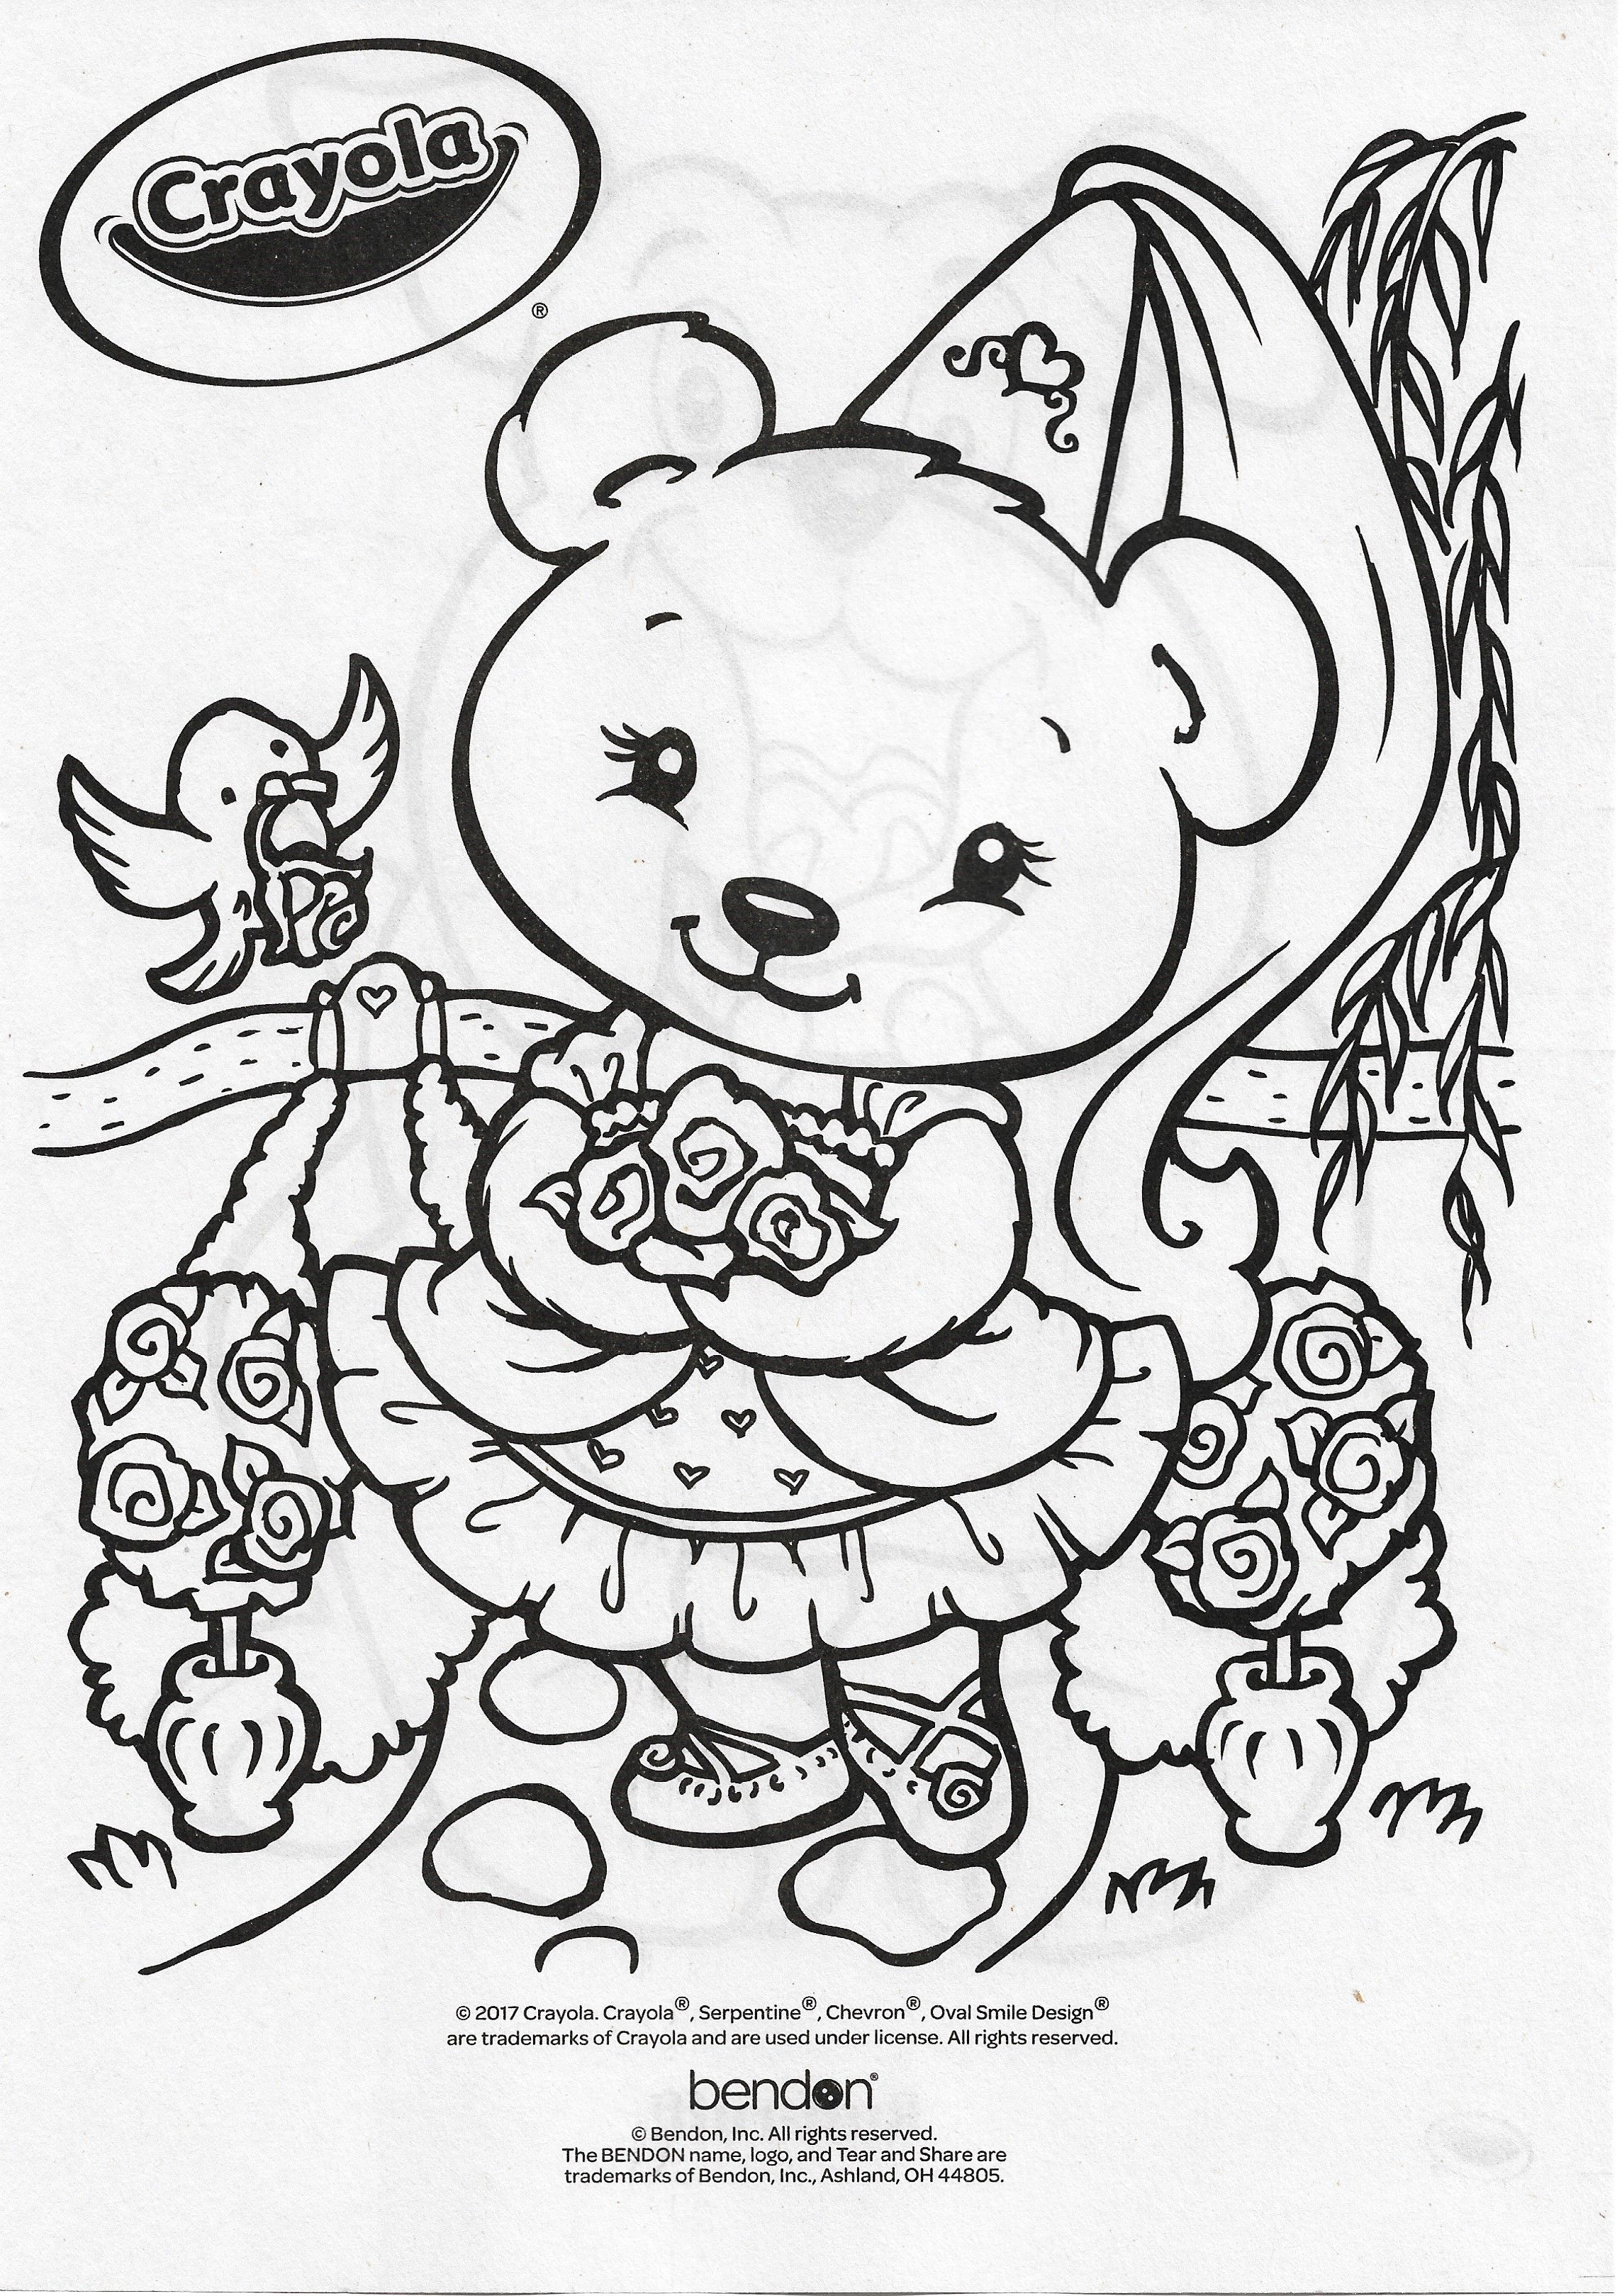 Crayola Coloring Pages Bear Coloring Pages Coloring Pages Crayola Coloring Pages